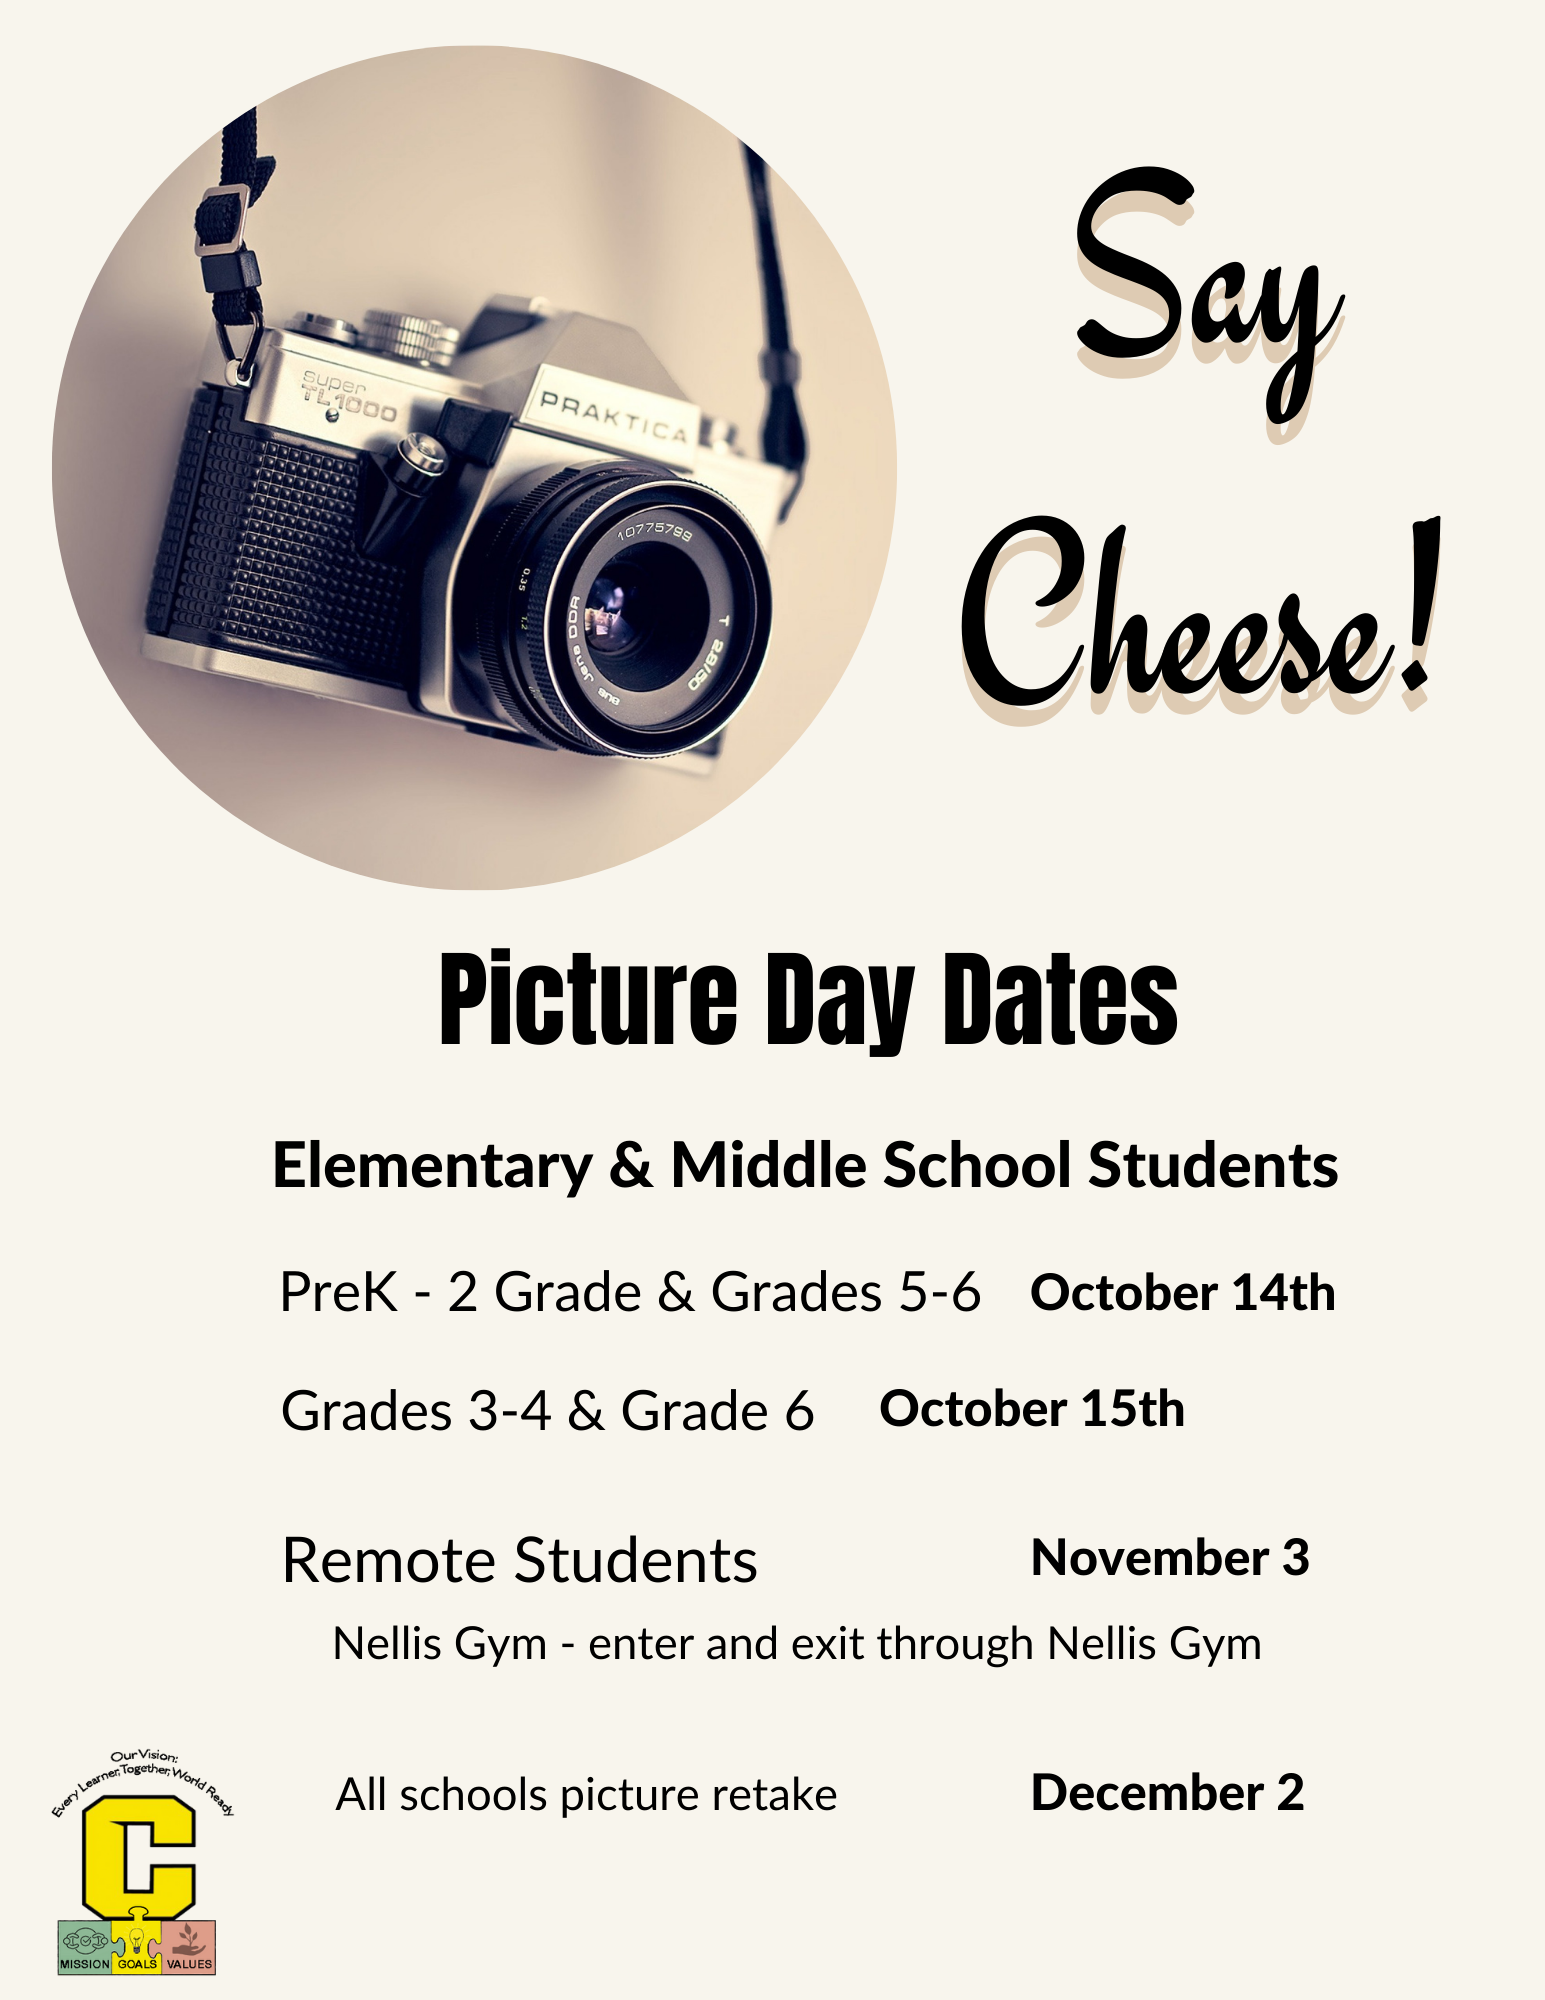 picture day dates for prek-6 grade